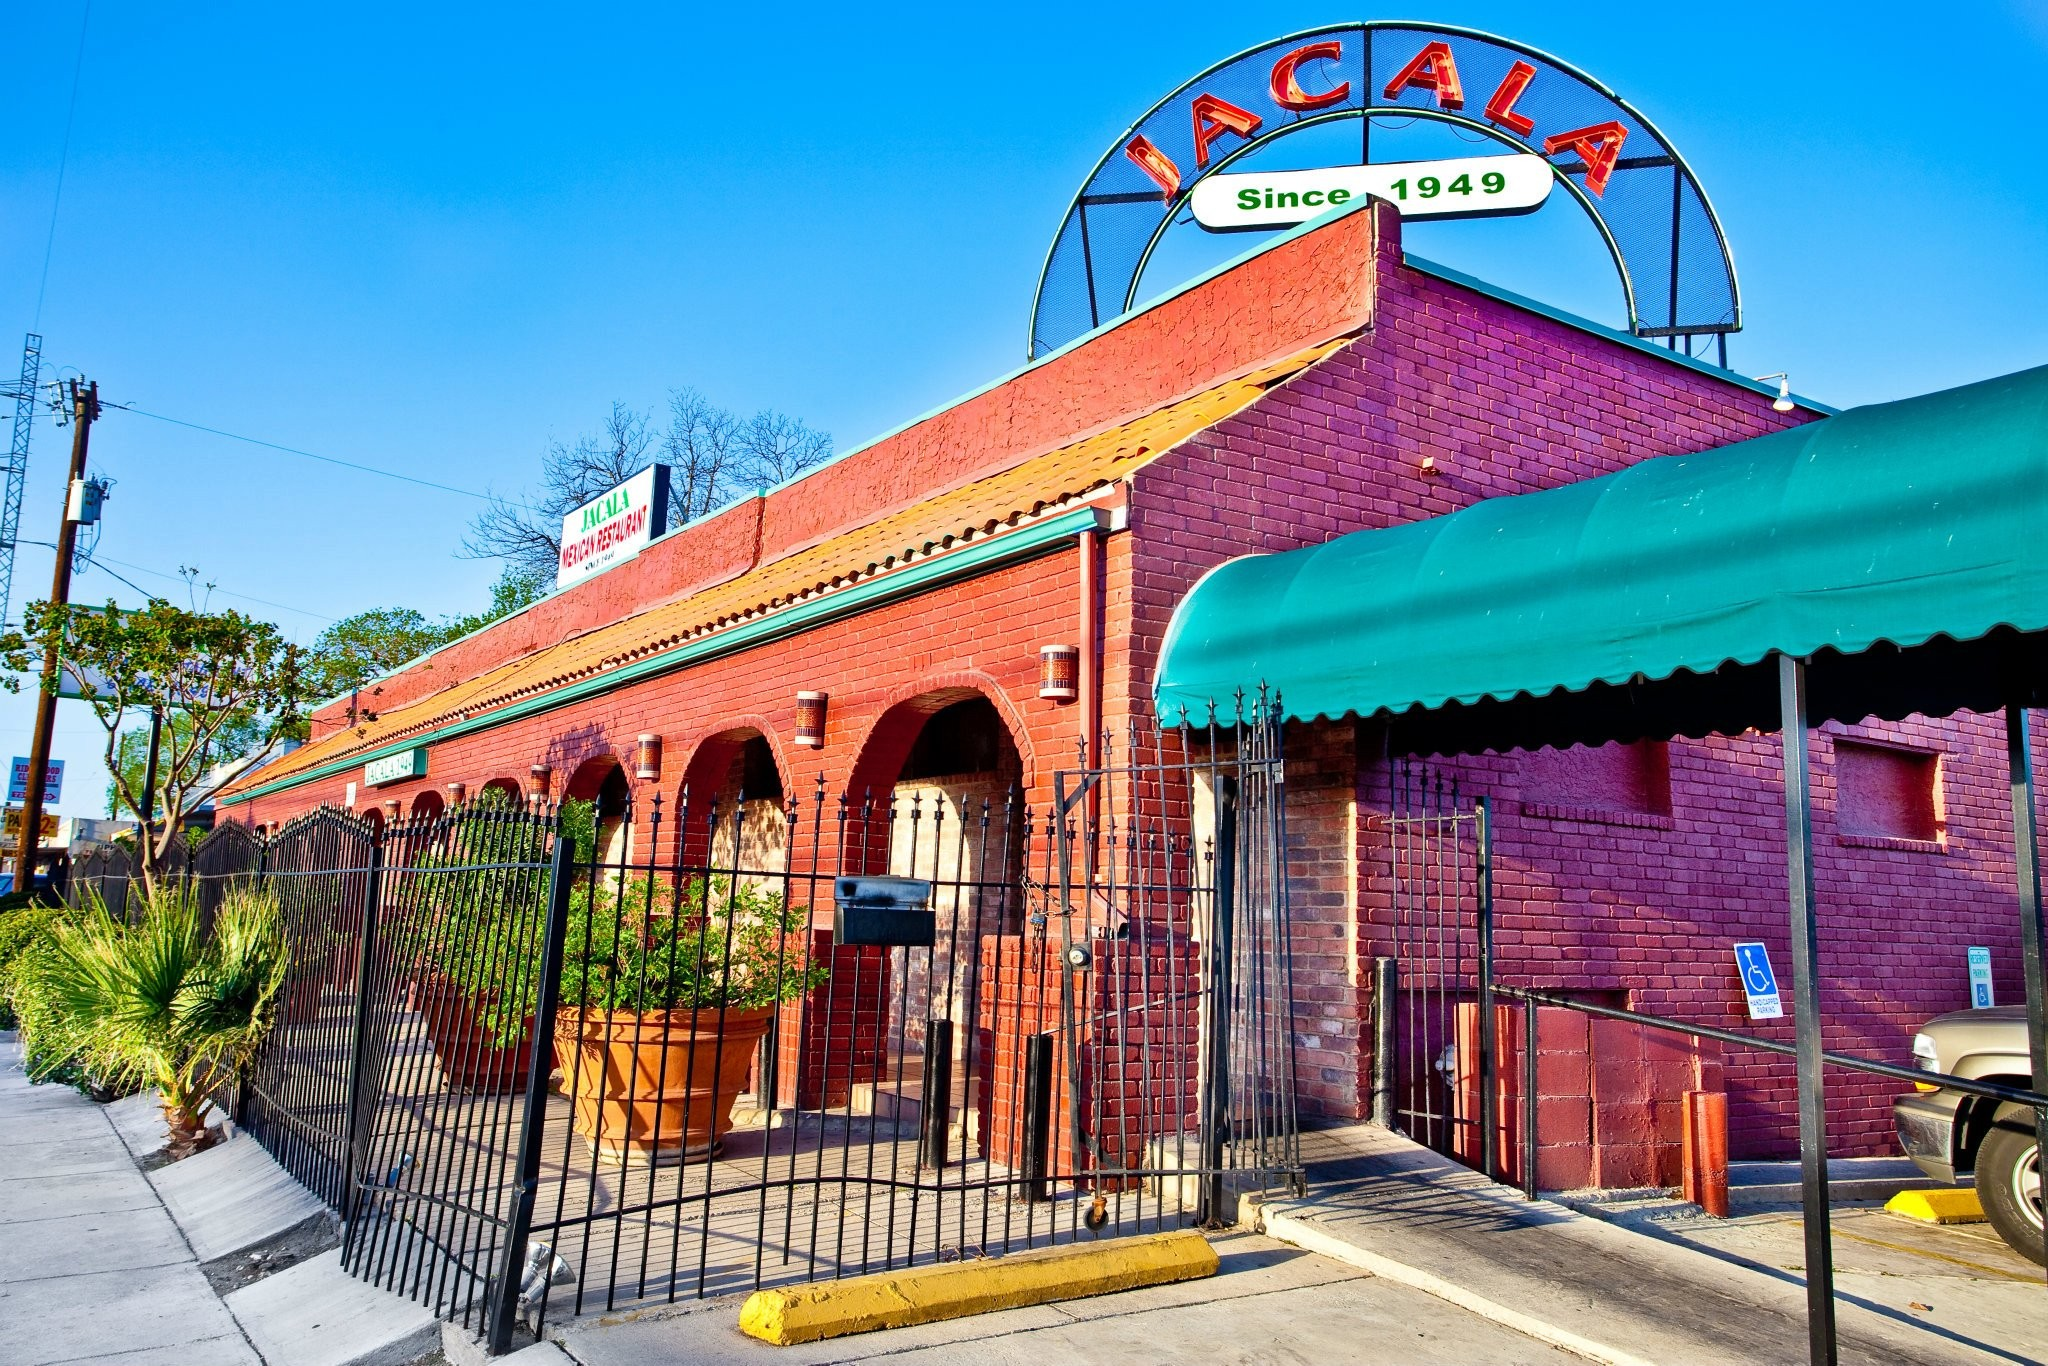 Mexican Restaurant Los Angeles Open Christmas 2020 Iconic San Antonio Puffy Taco Spot Jacala Mexican Restaurant Goes